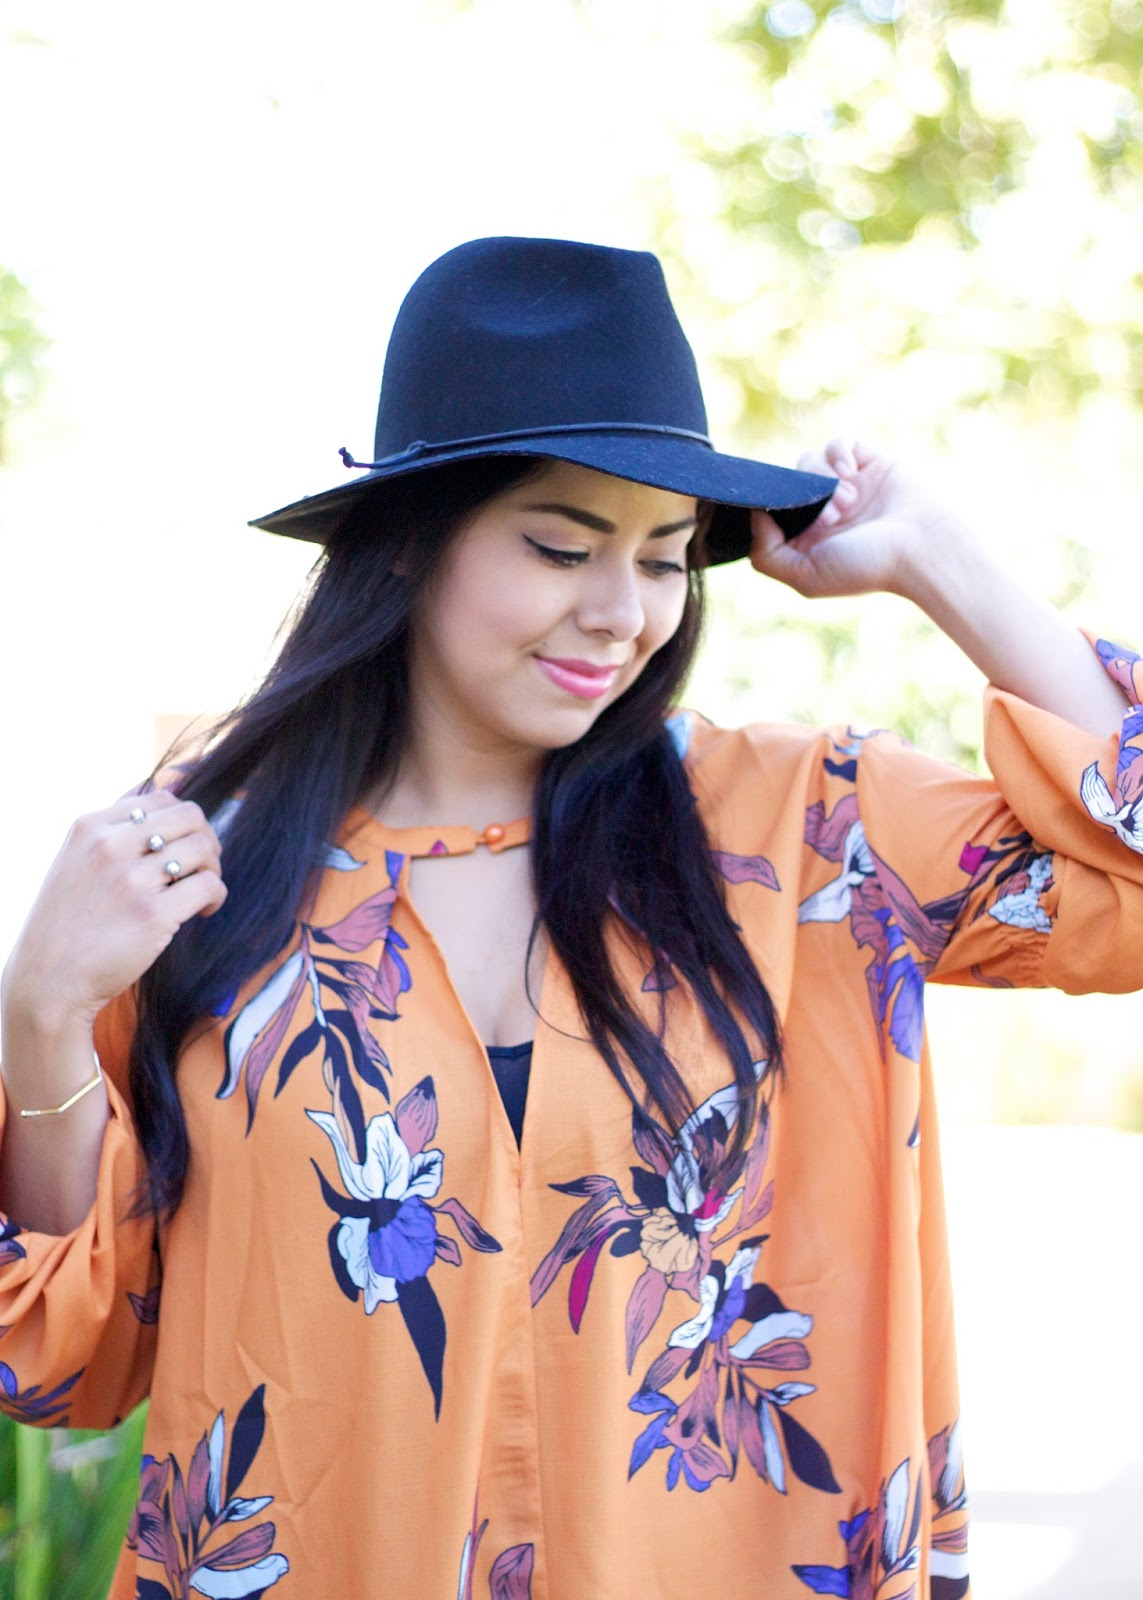 Boho vibes in an outfit, kendra scott two finger ring, kendra scott orange county, gorjana hexagon cuff, target style fedora hat